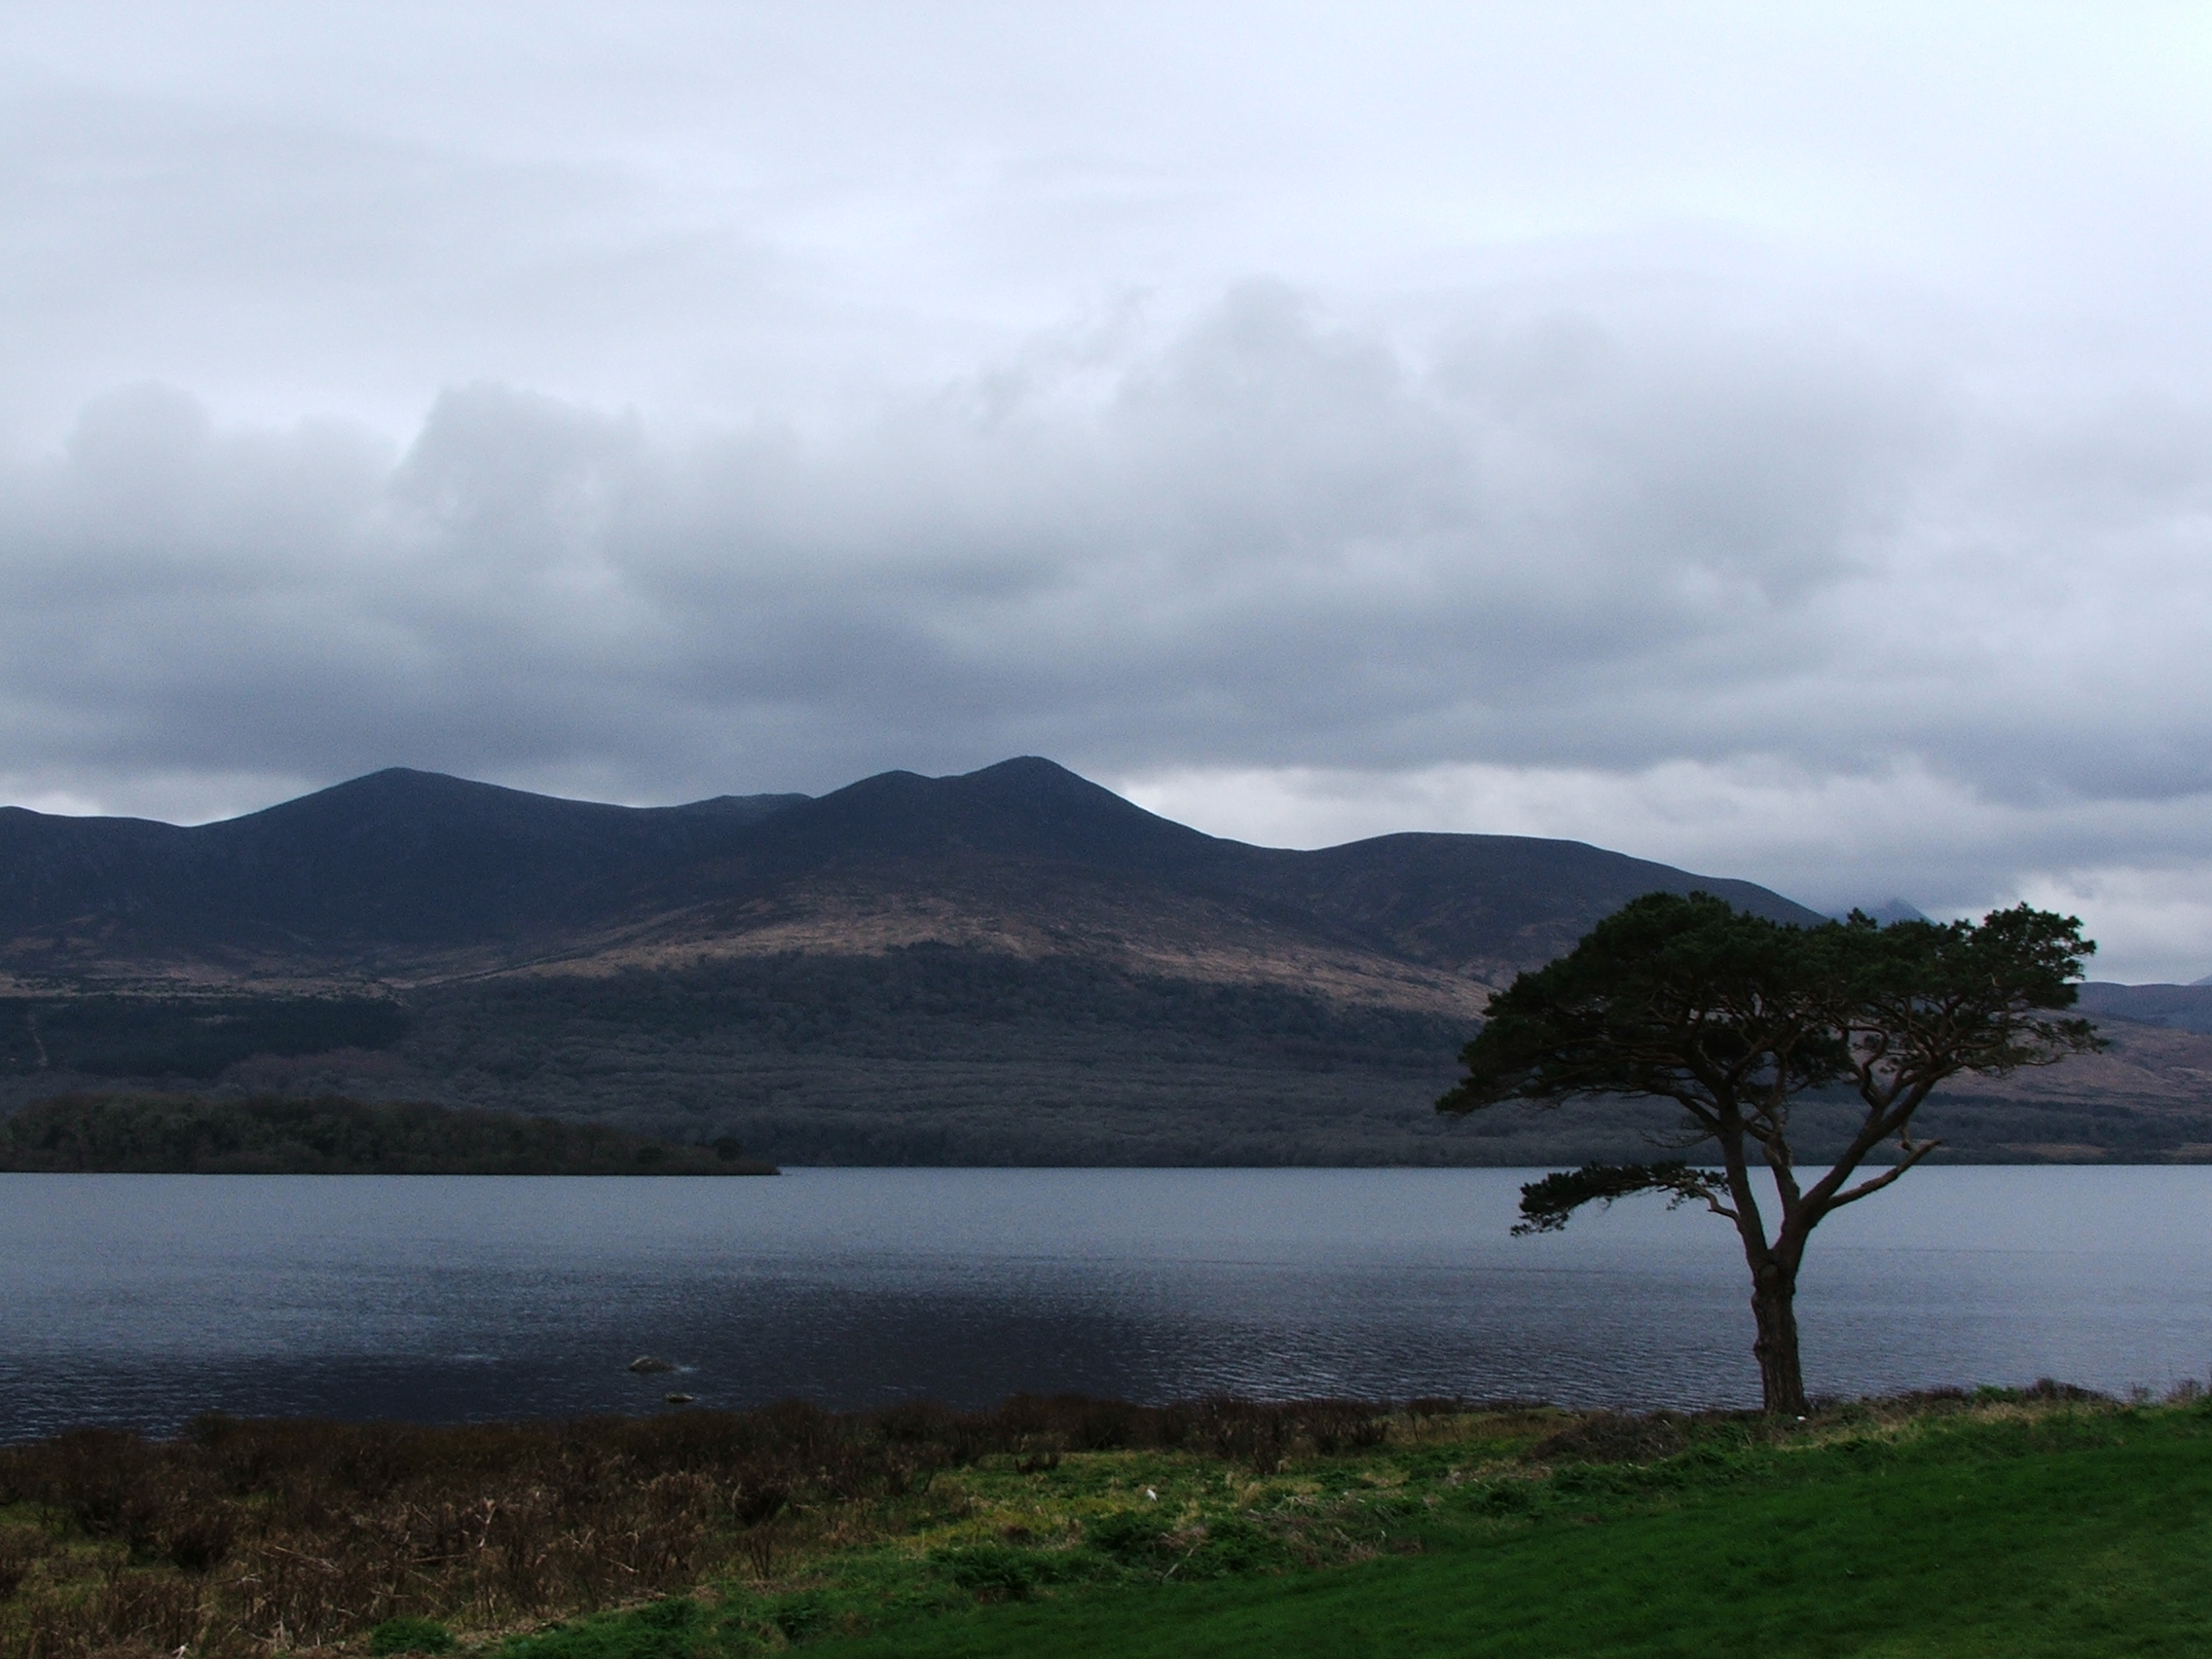 http://upload.wikimedia.org/wikipedia/commons/6/6b/Lakes_of_killarney.jpg